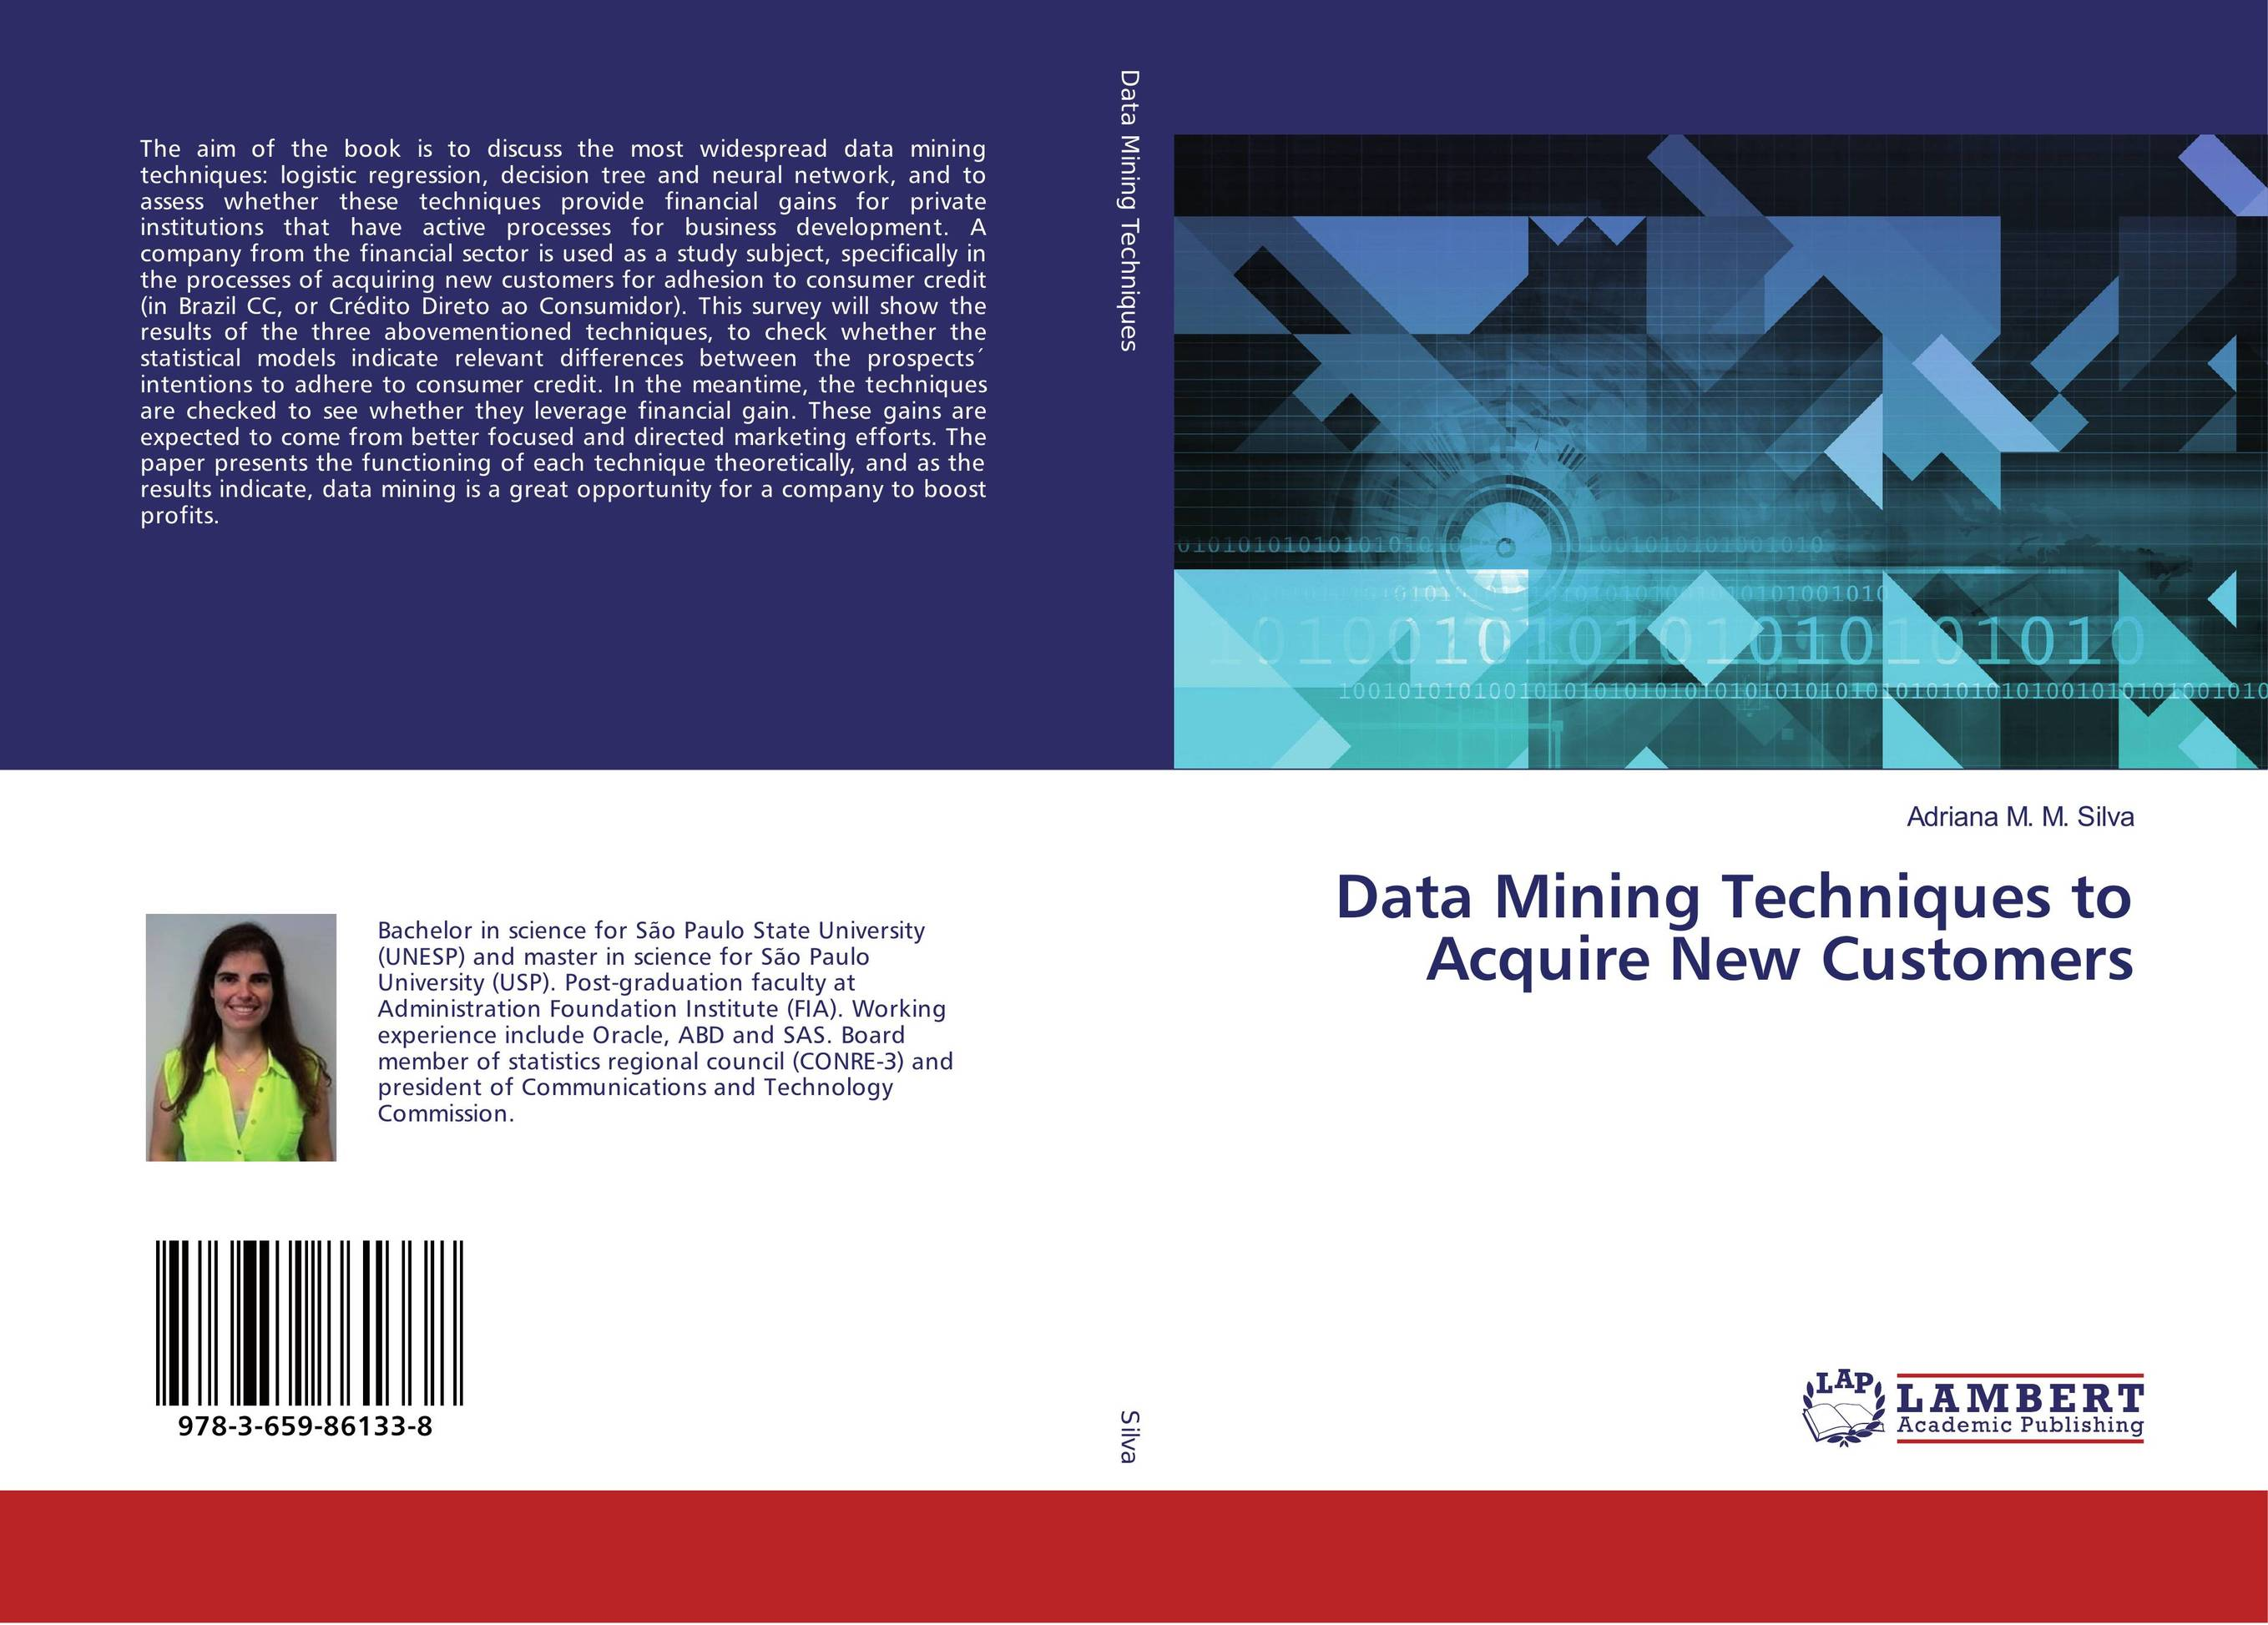 Data Mining Techniques to Acquire New Customers survey on data mining techniques in intrusion detection